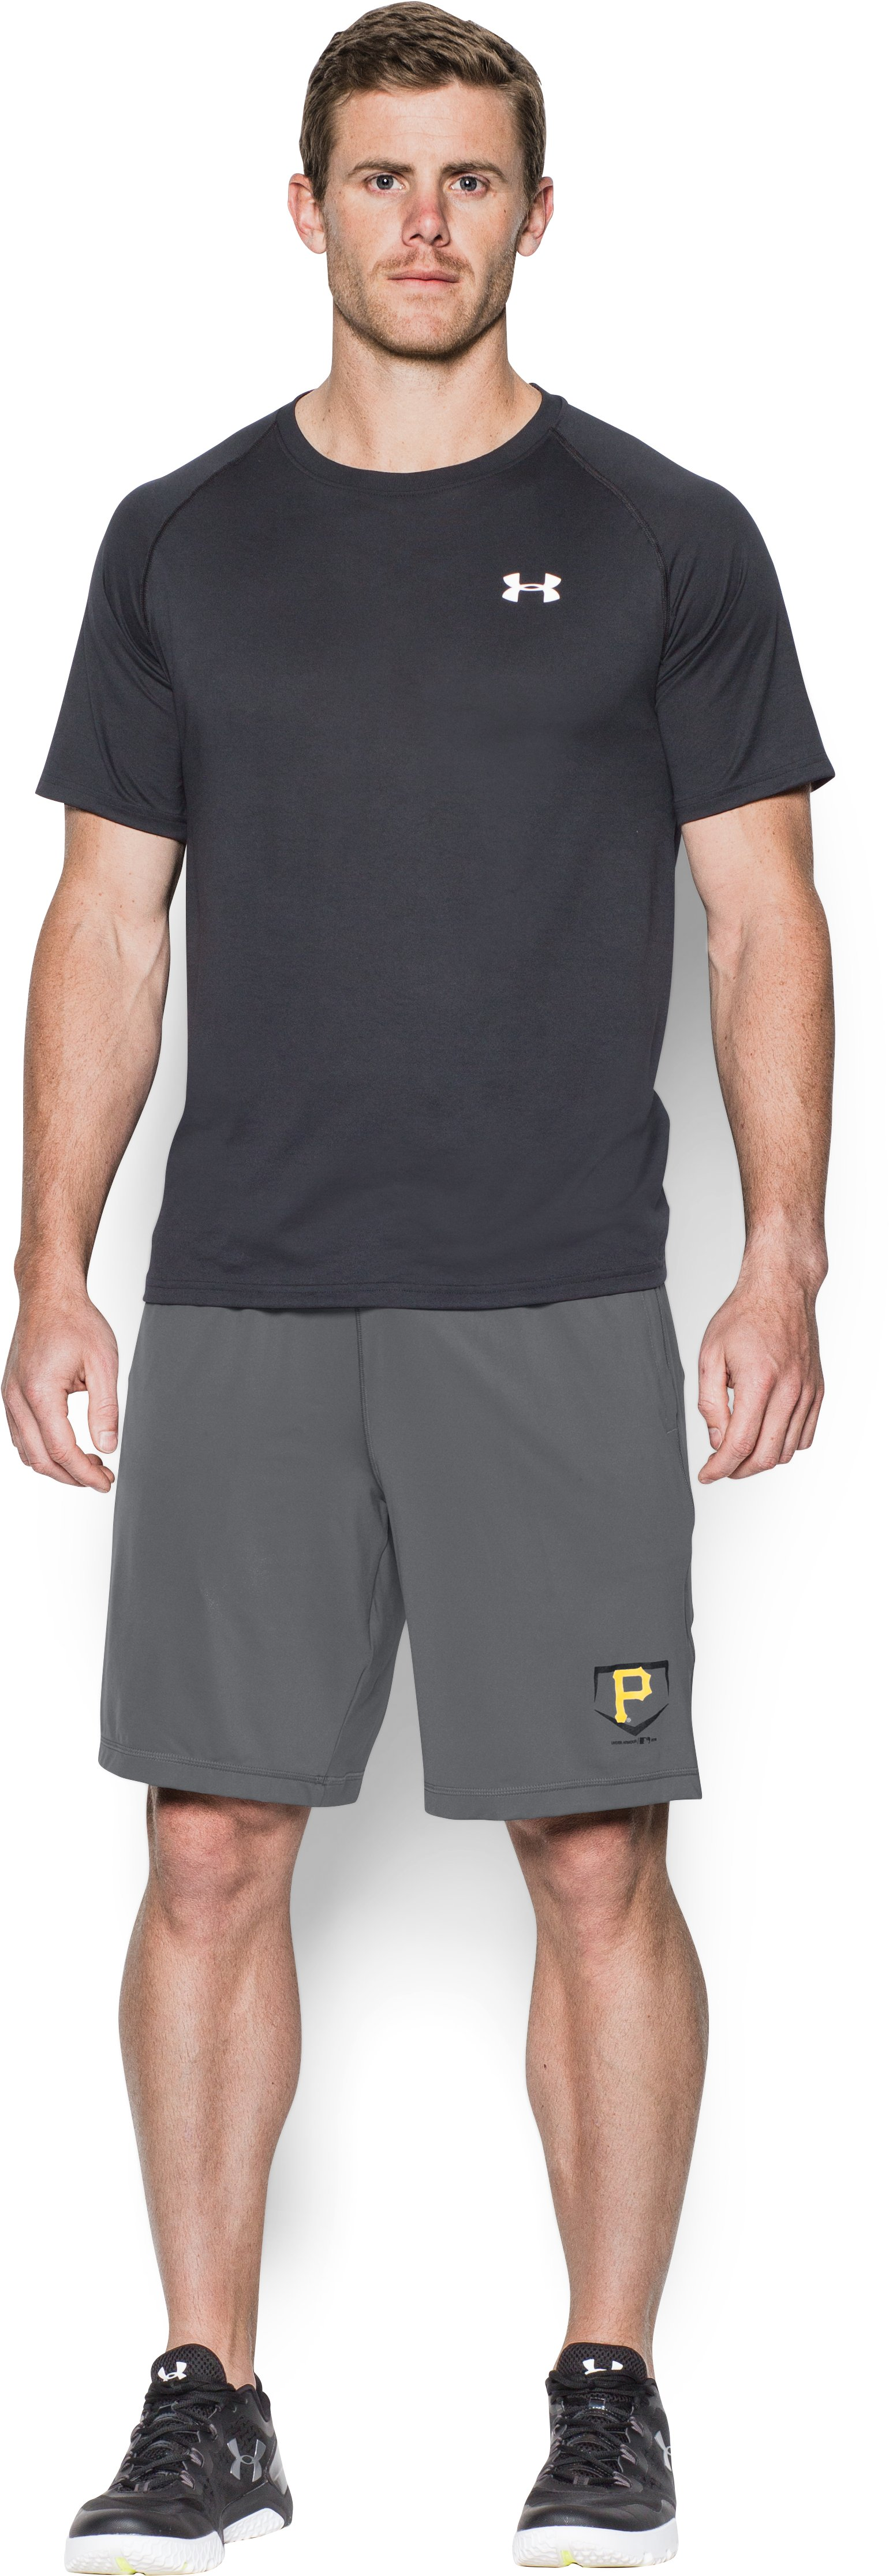 Men's Pittsburgh Pirates Raid Shorts, Graphite, zoomed image